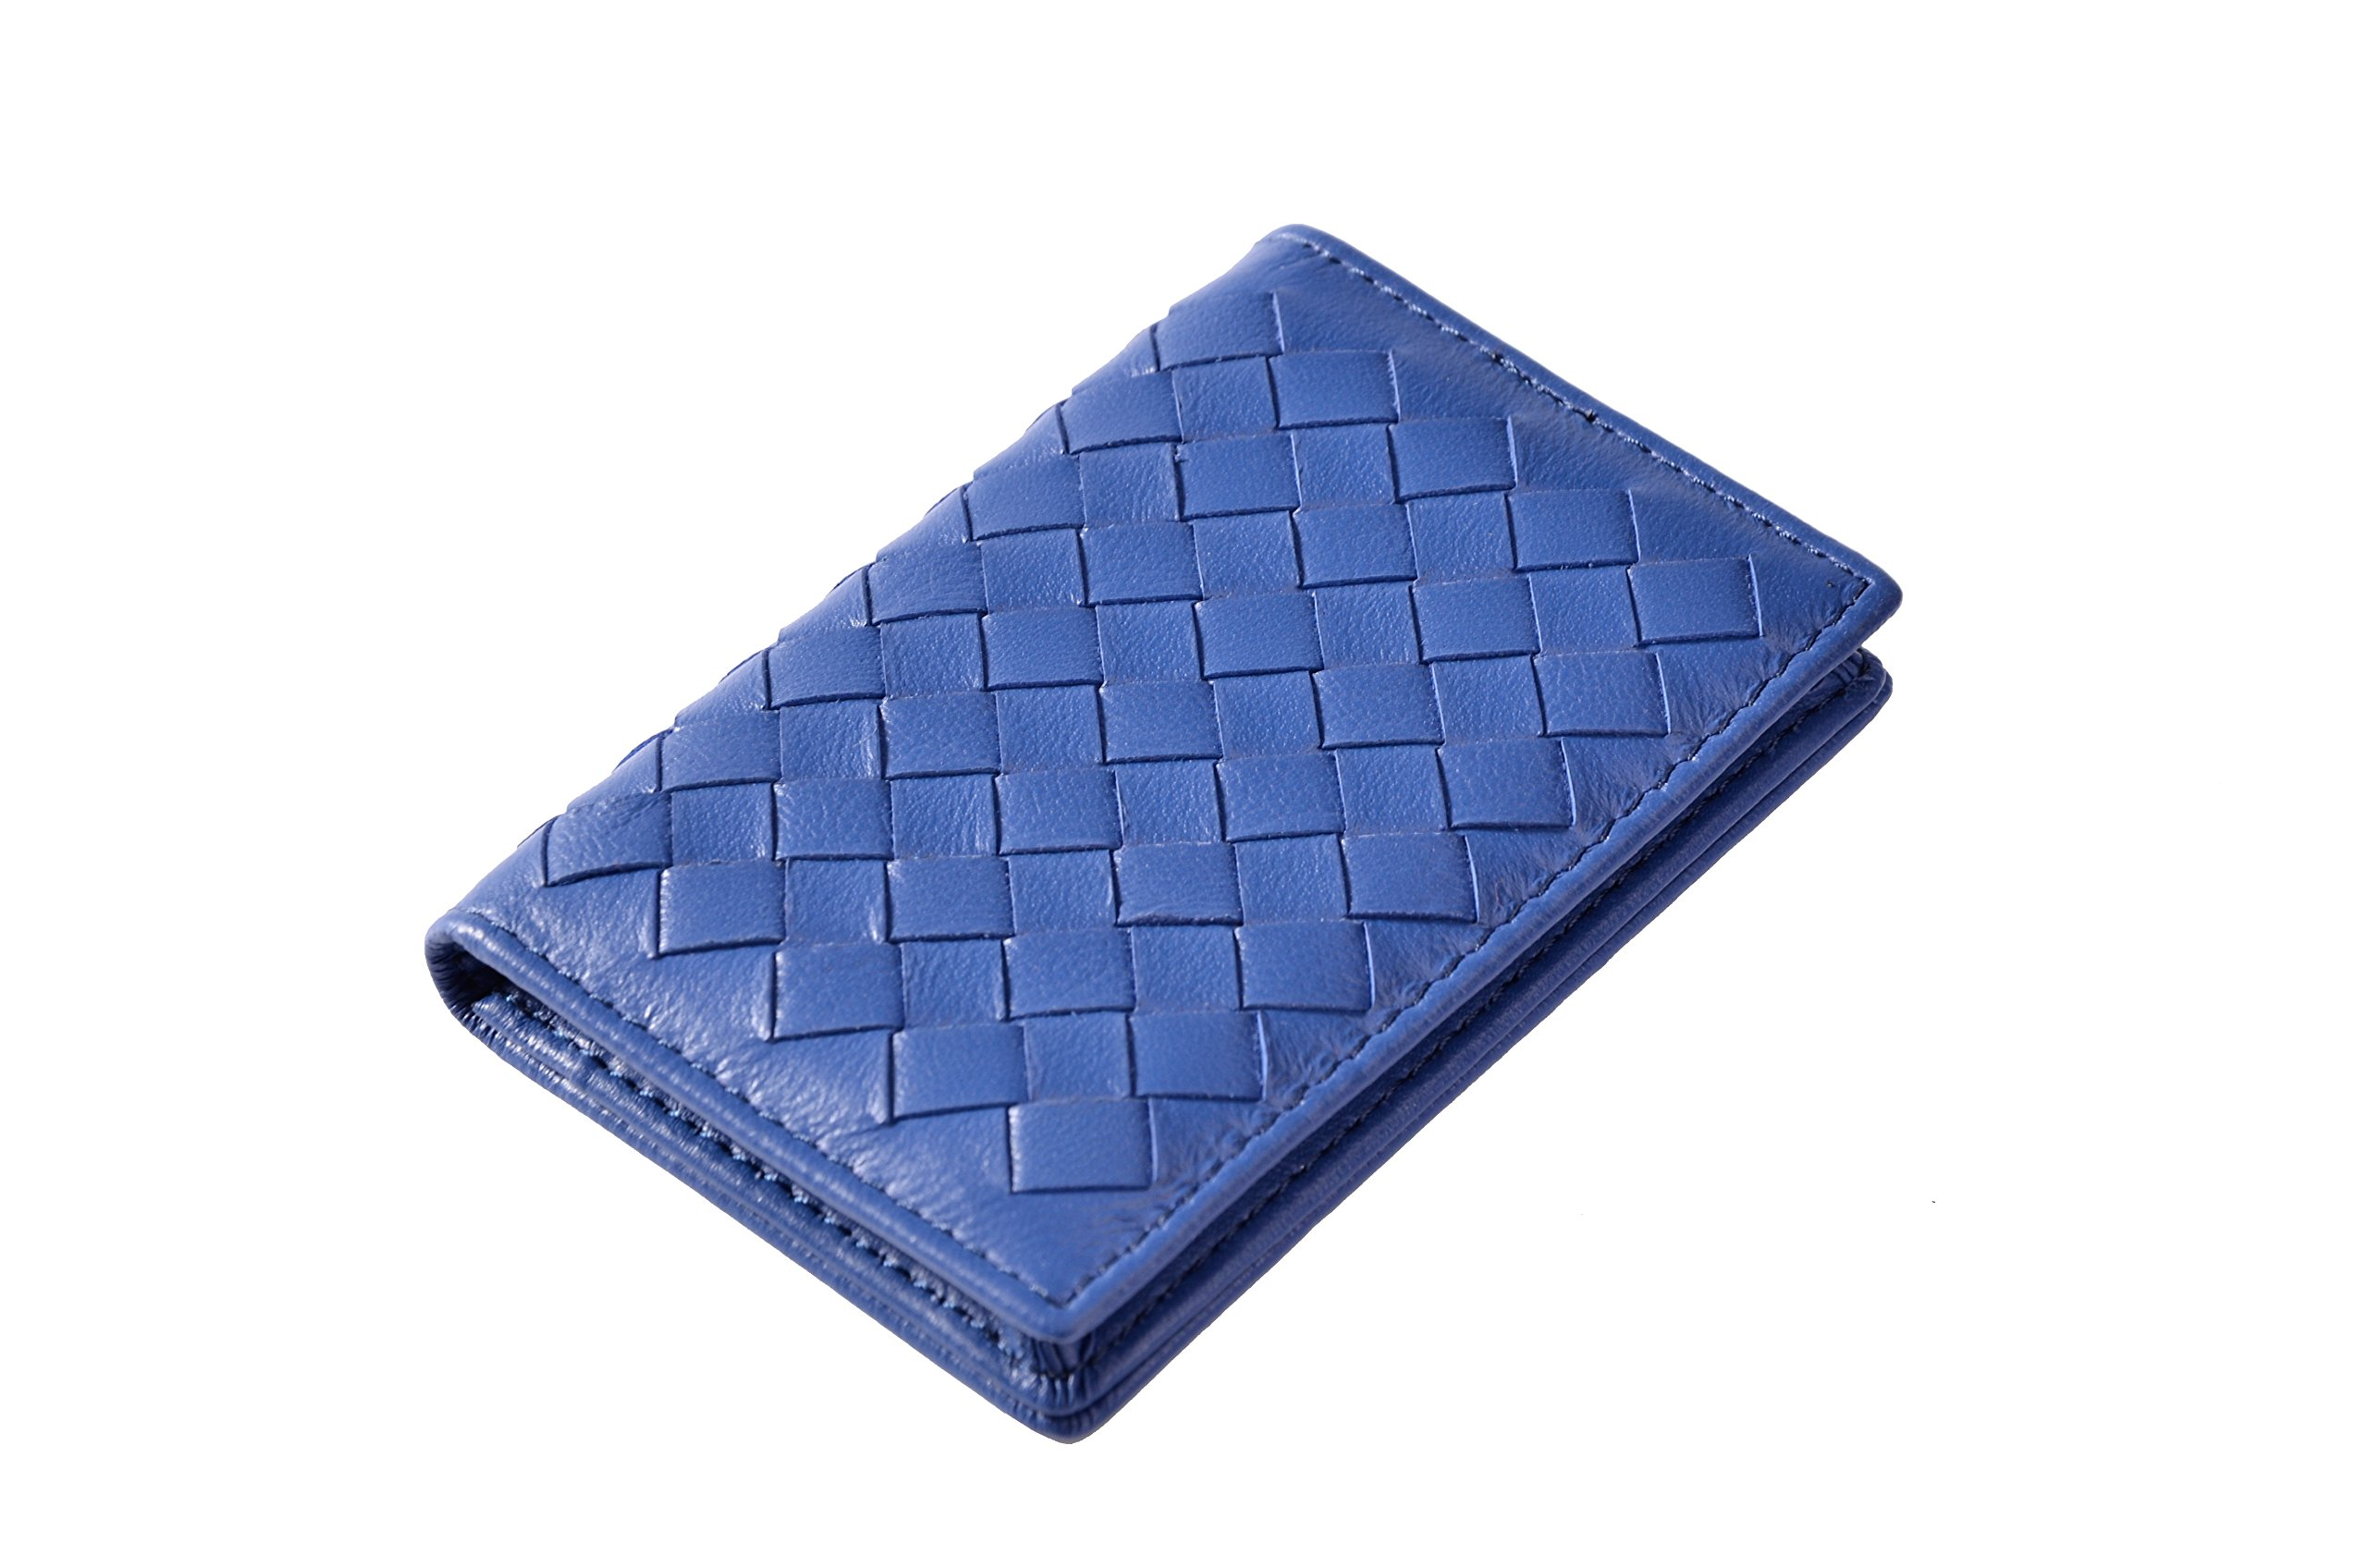 Tarhoo RFID Blocking Genuine Leather Card Holder,Card Case Hold 40 Business Cards in Gift Box for Men and Women(Sapphire blue)